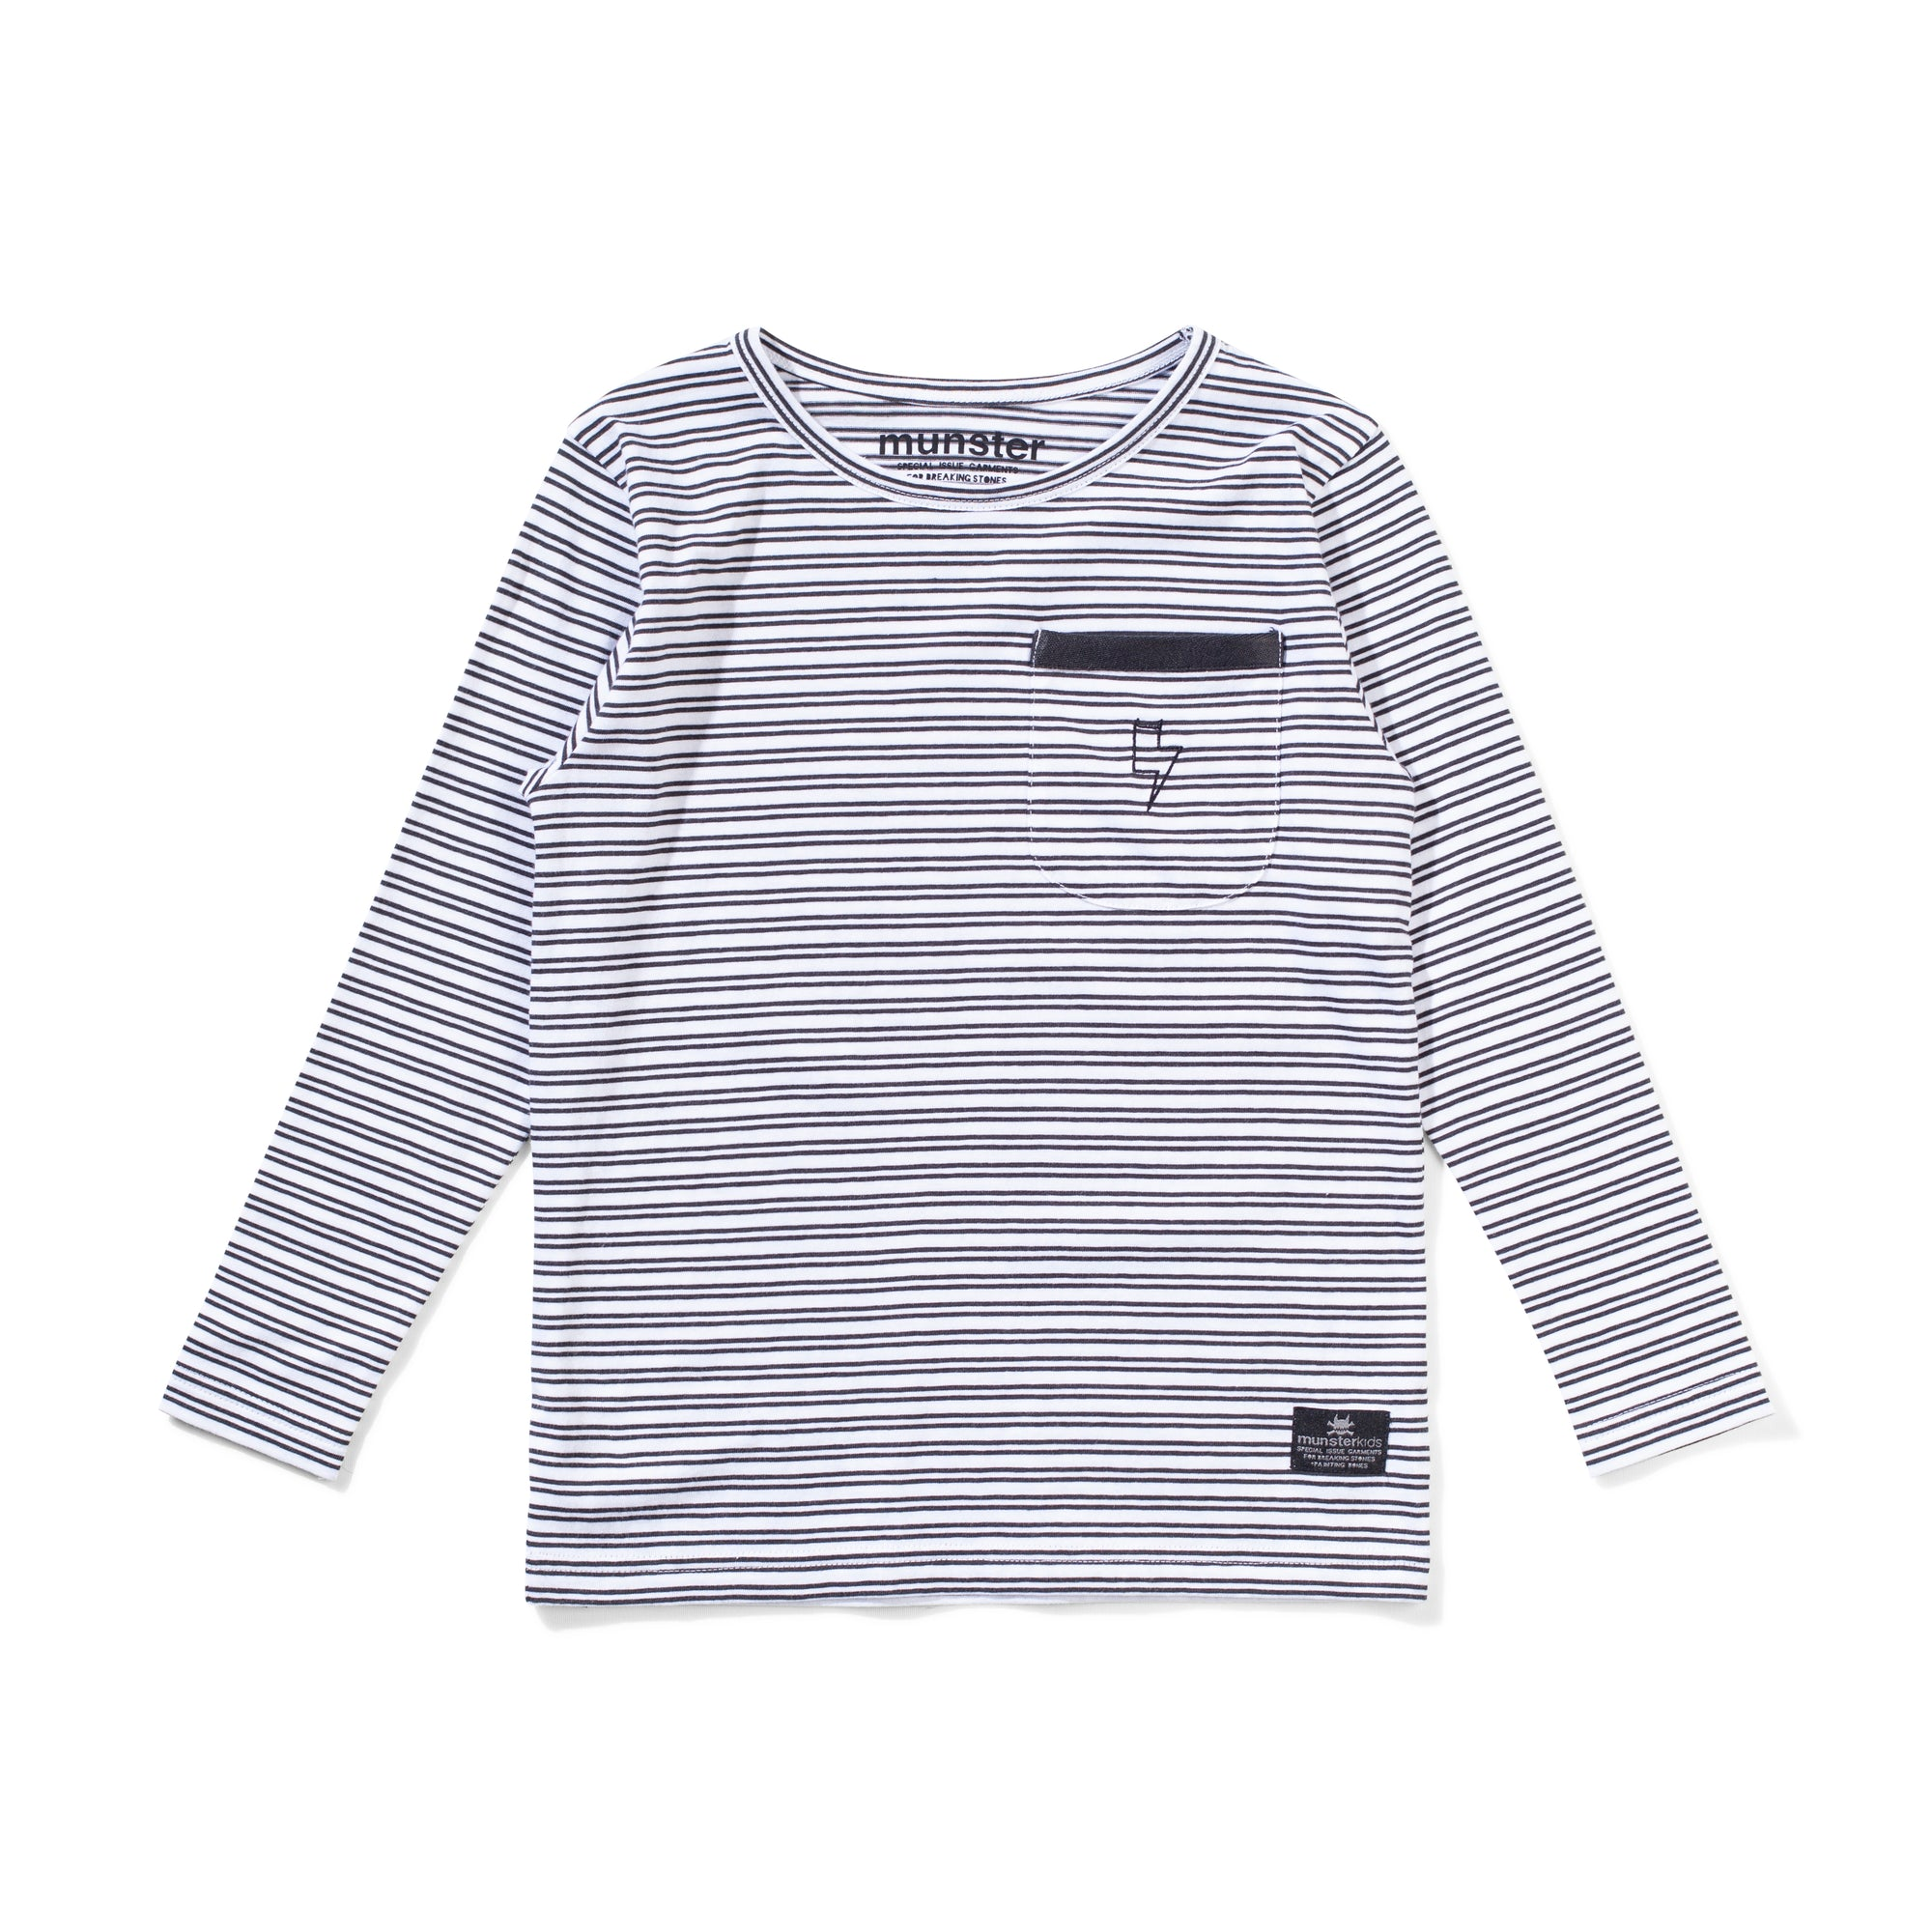 Lines LS Tee White/Soft Black Stripe